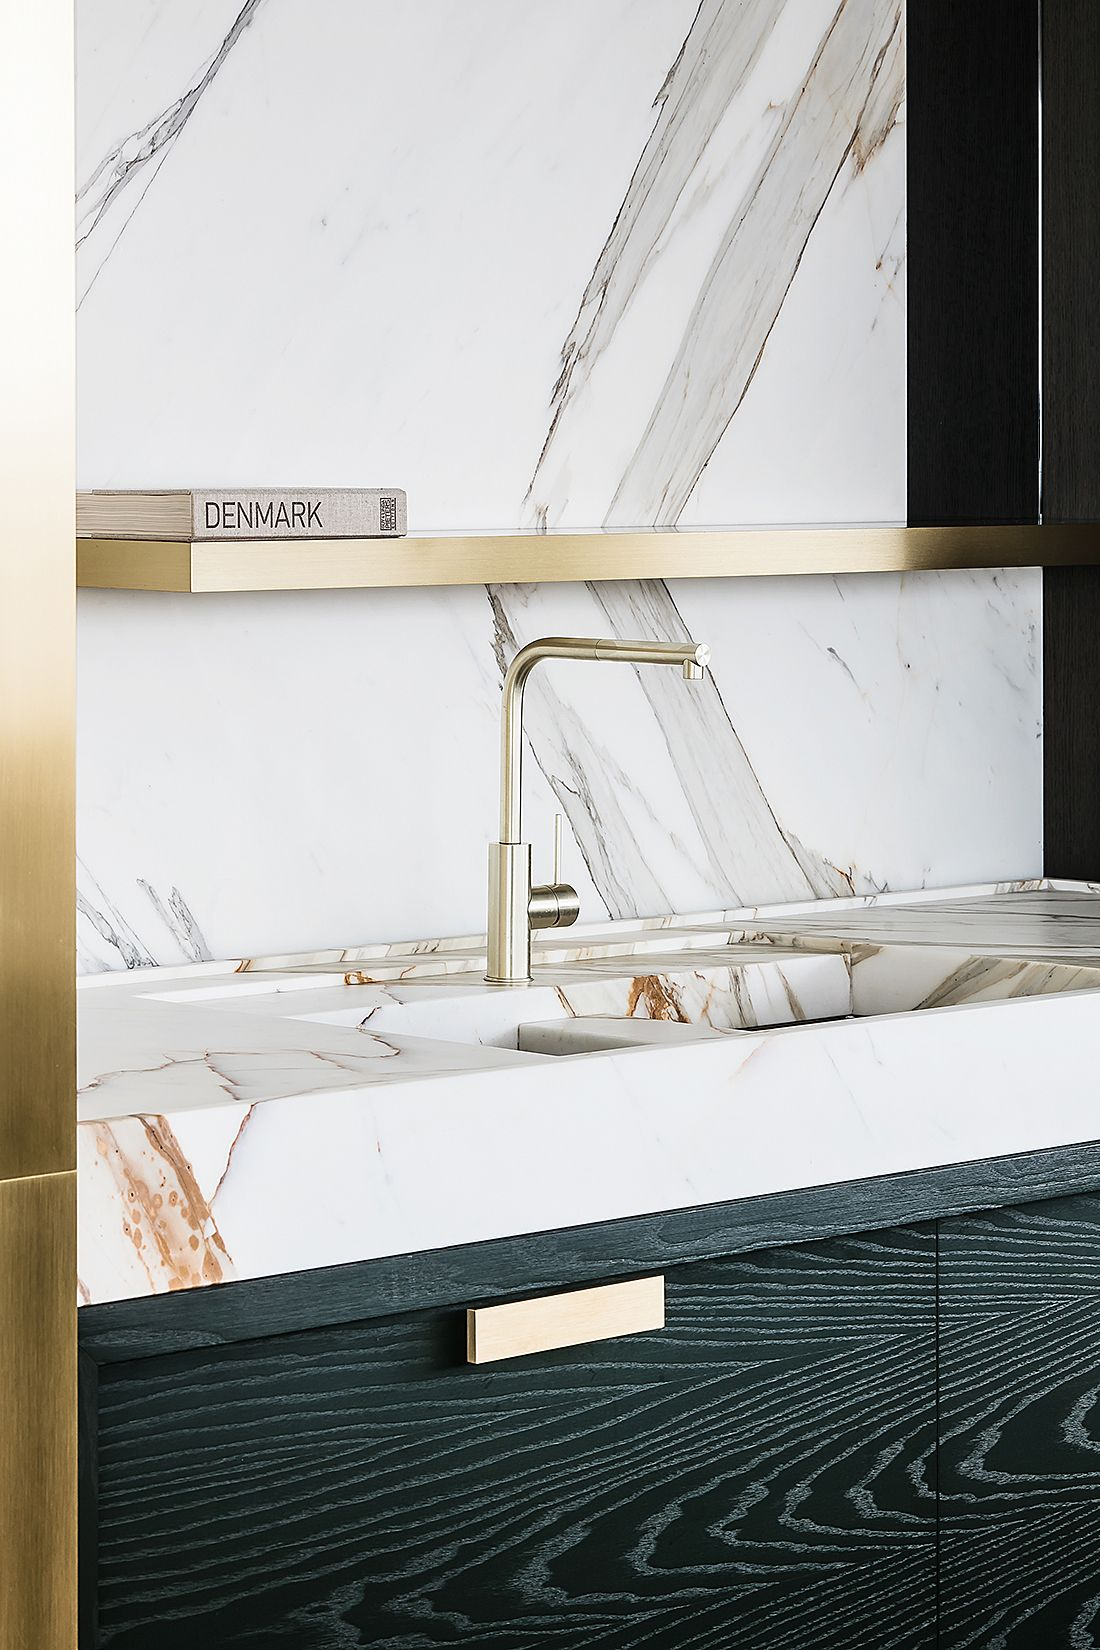 Integrated Marble Sink By Frederic Kielemoes Photo Cafeine